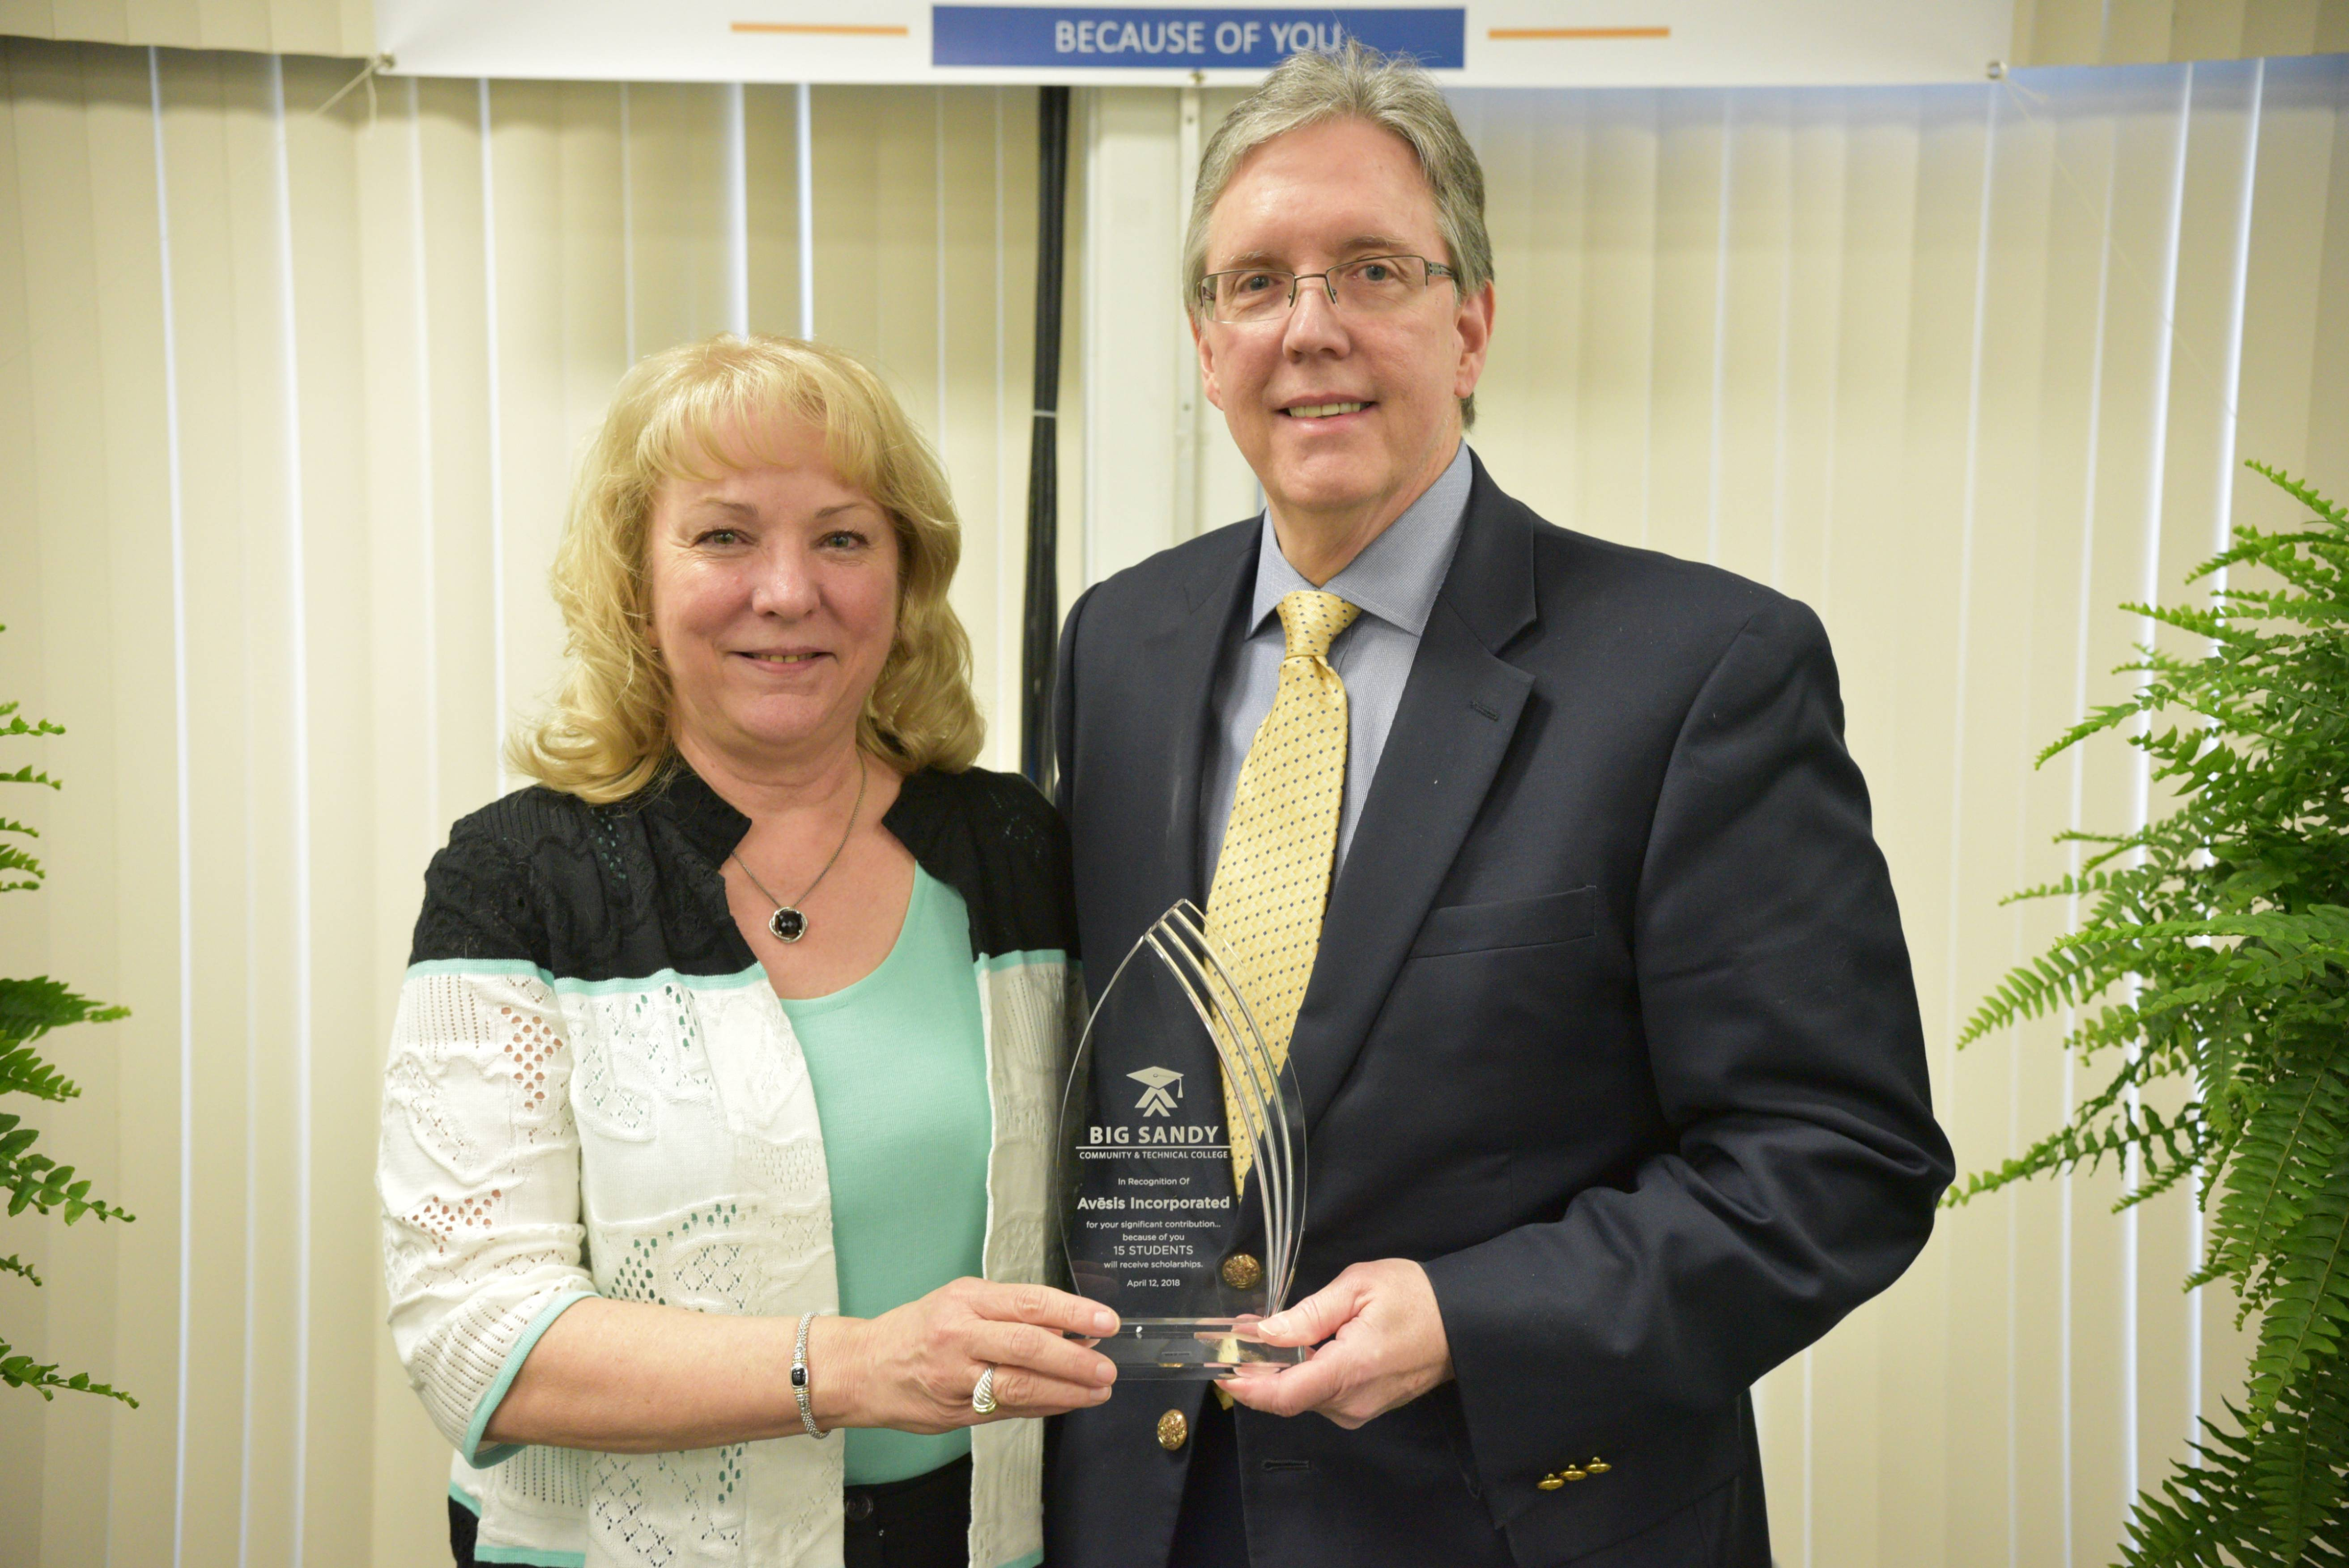 Dr. Andy Elliott DMD, accepts an award on behalf of Avesis from Dr. Sherry Zylka, BSCTC President/CEO at the Celebration of Success. This annual event is held by Big Sandy Community and Technical College to honor donors and their contributions to the college and student success.